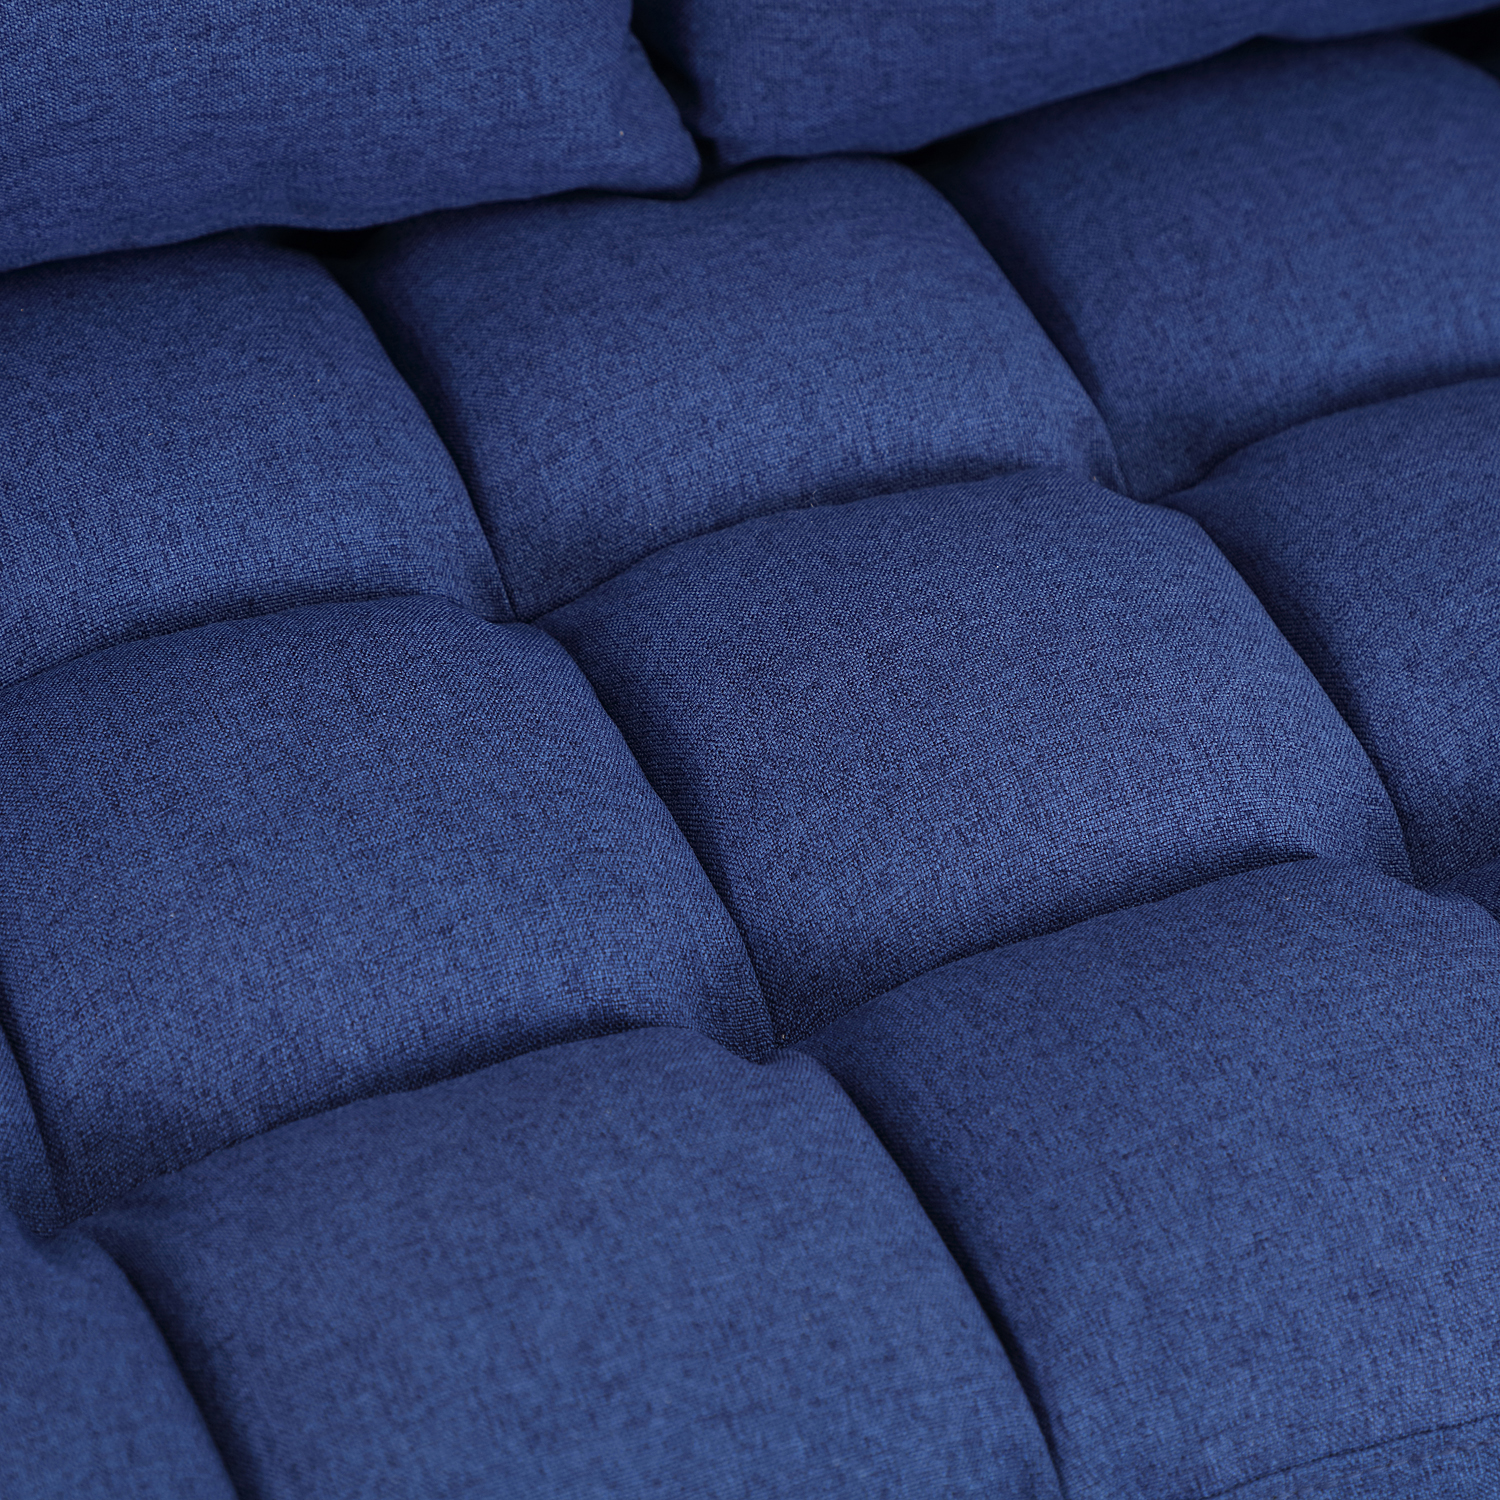 Convertible-Sofa-Bed-Sleeper-Couch-Chaise-Lounge-Chair-Adjustable-Padded-Pillow thumbnail 54